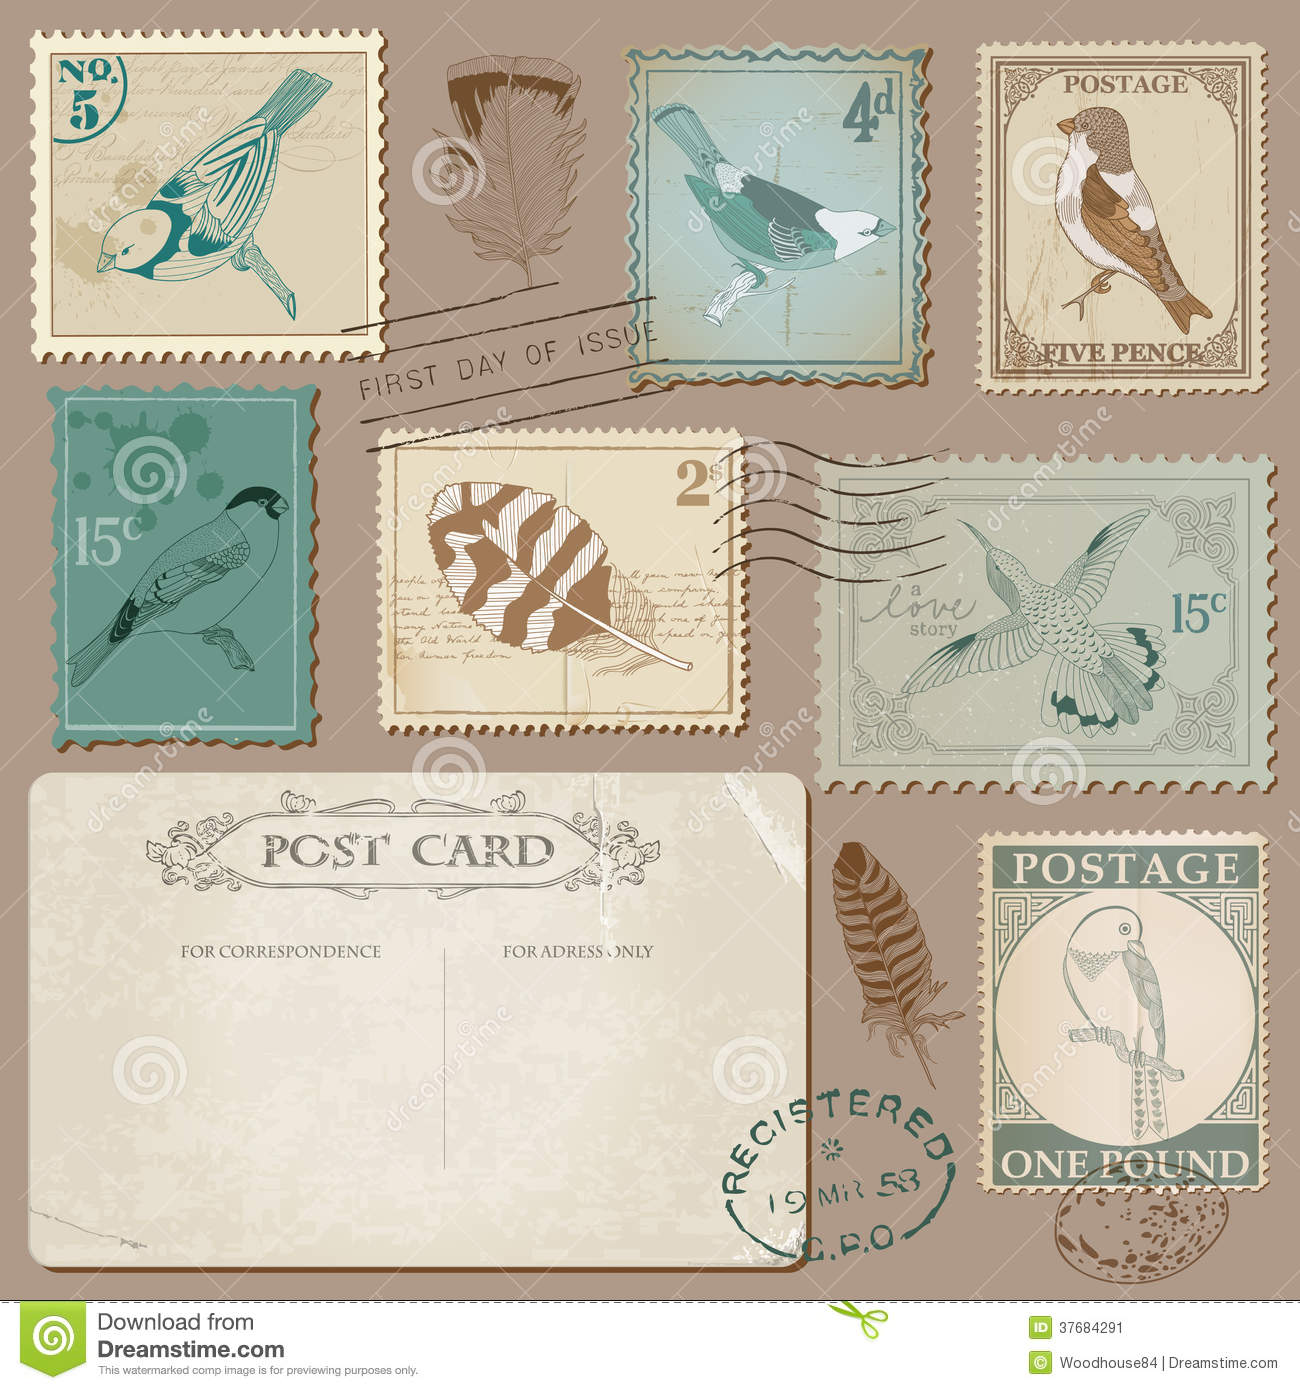 Vintage Postage Stamps With Birds Stock Image - Image ...